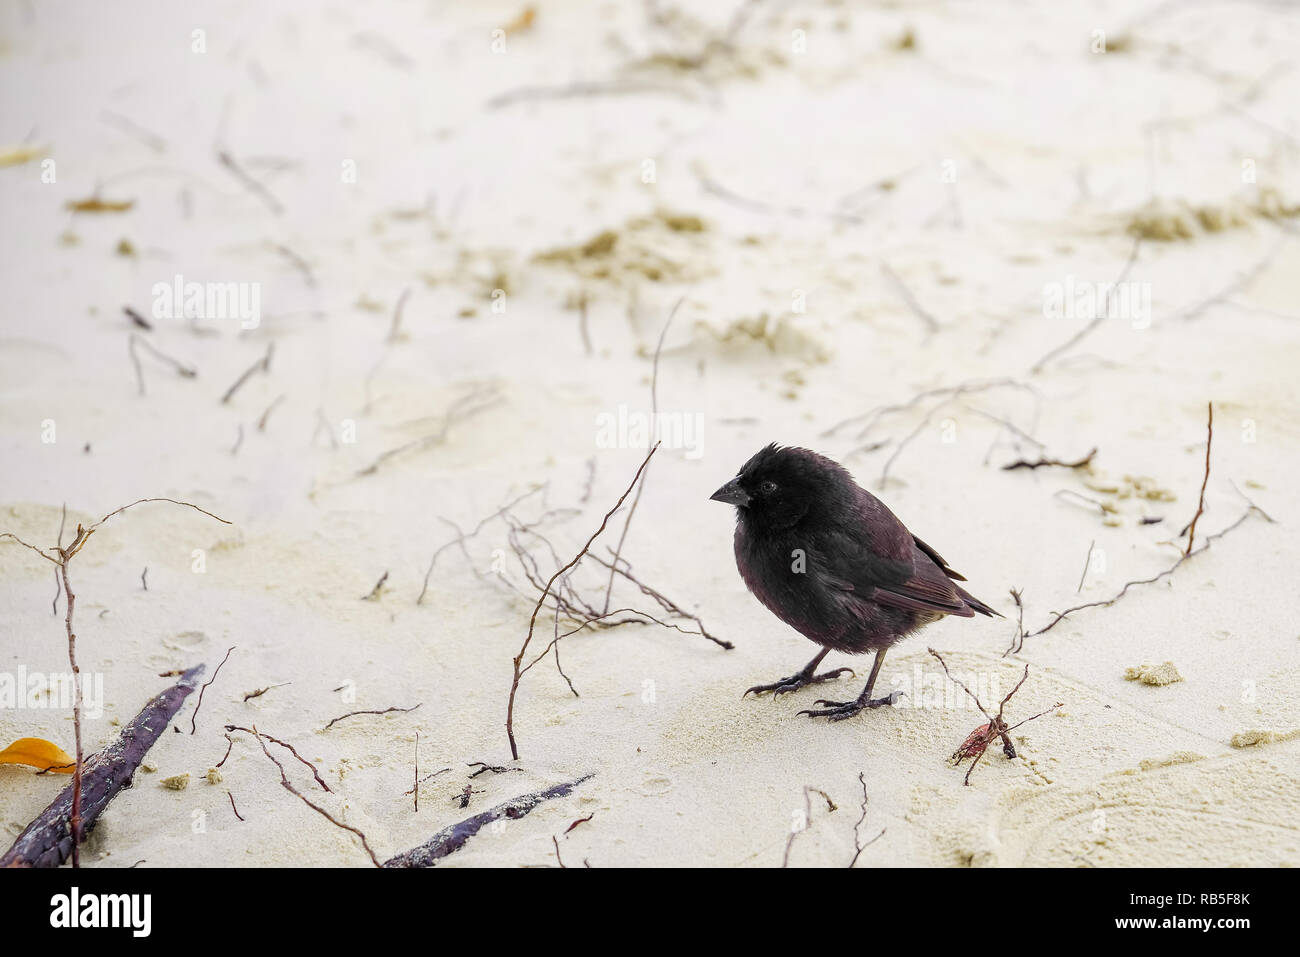 Galapagos Finch Geospiza fortis male perched on a white sand in Santa Cruz, Galapagos Islands - Stock Image